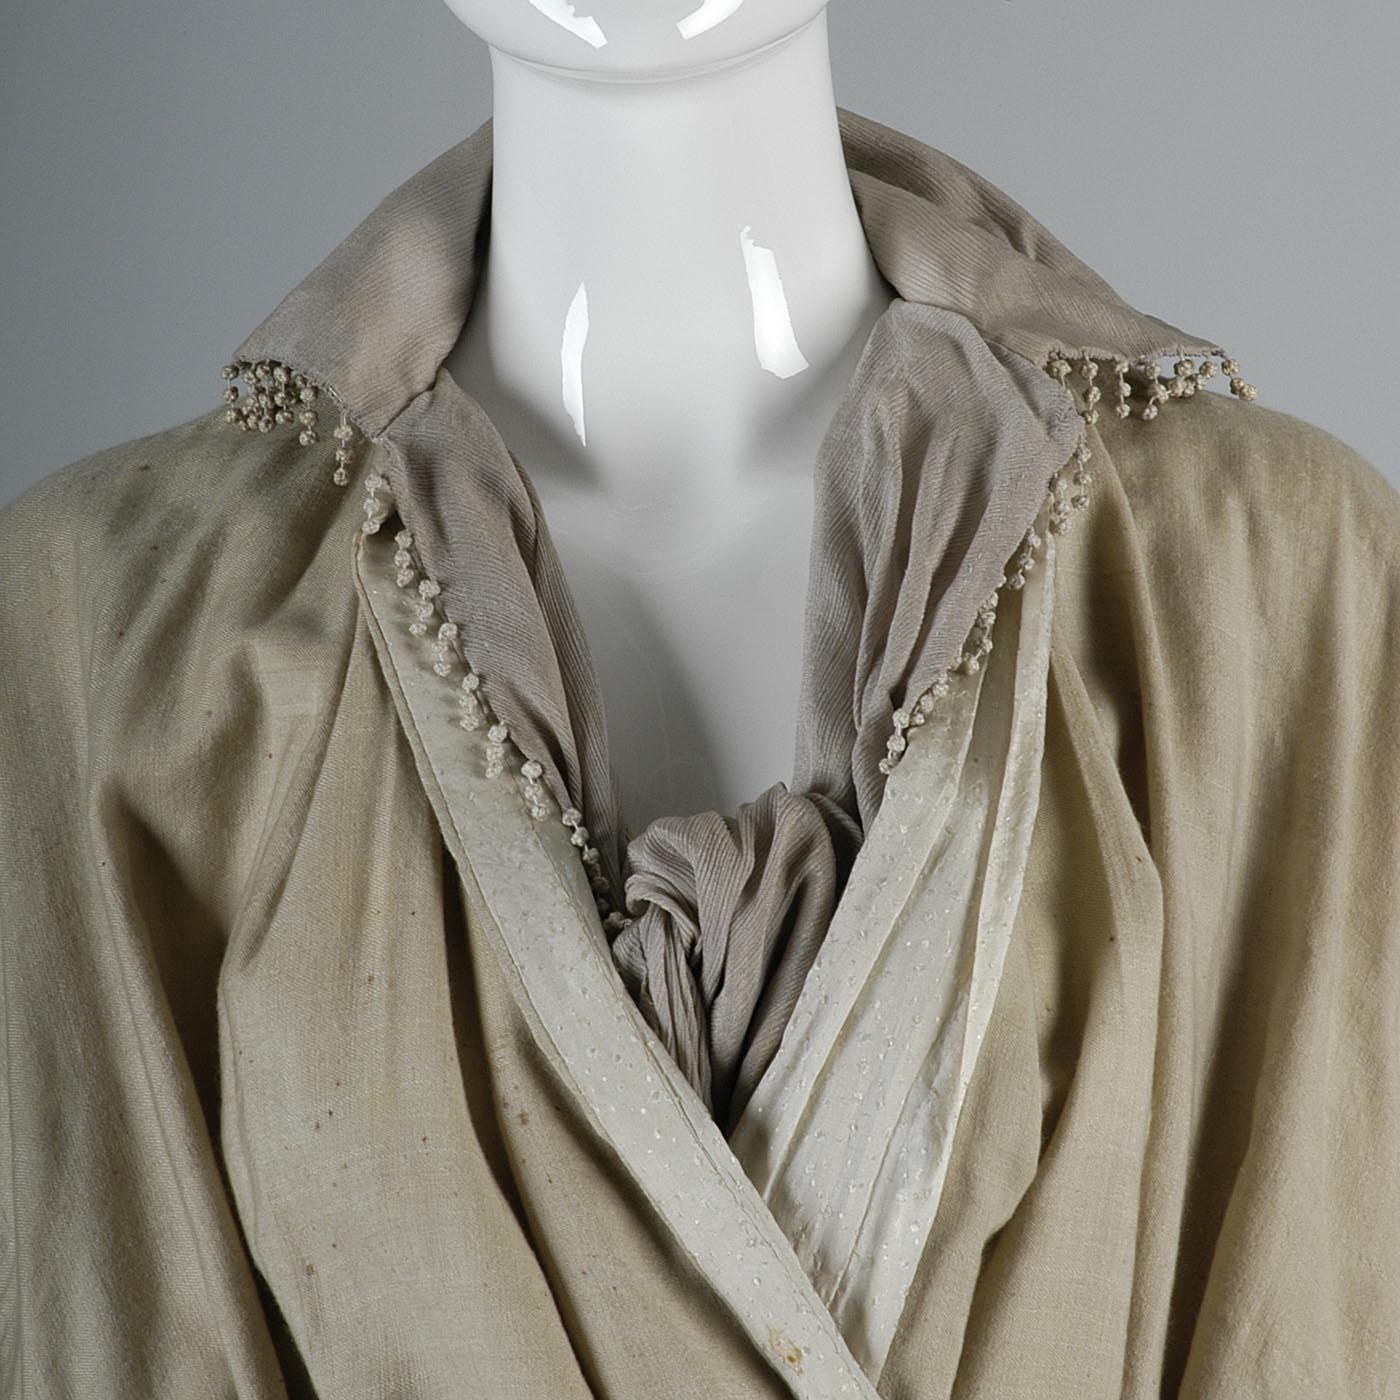 Edwardian Walking Coat with Pleated Back and Wide Sleeves